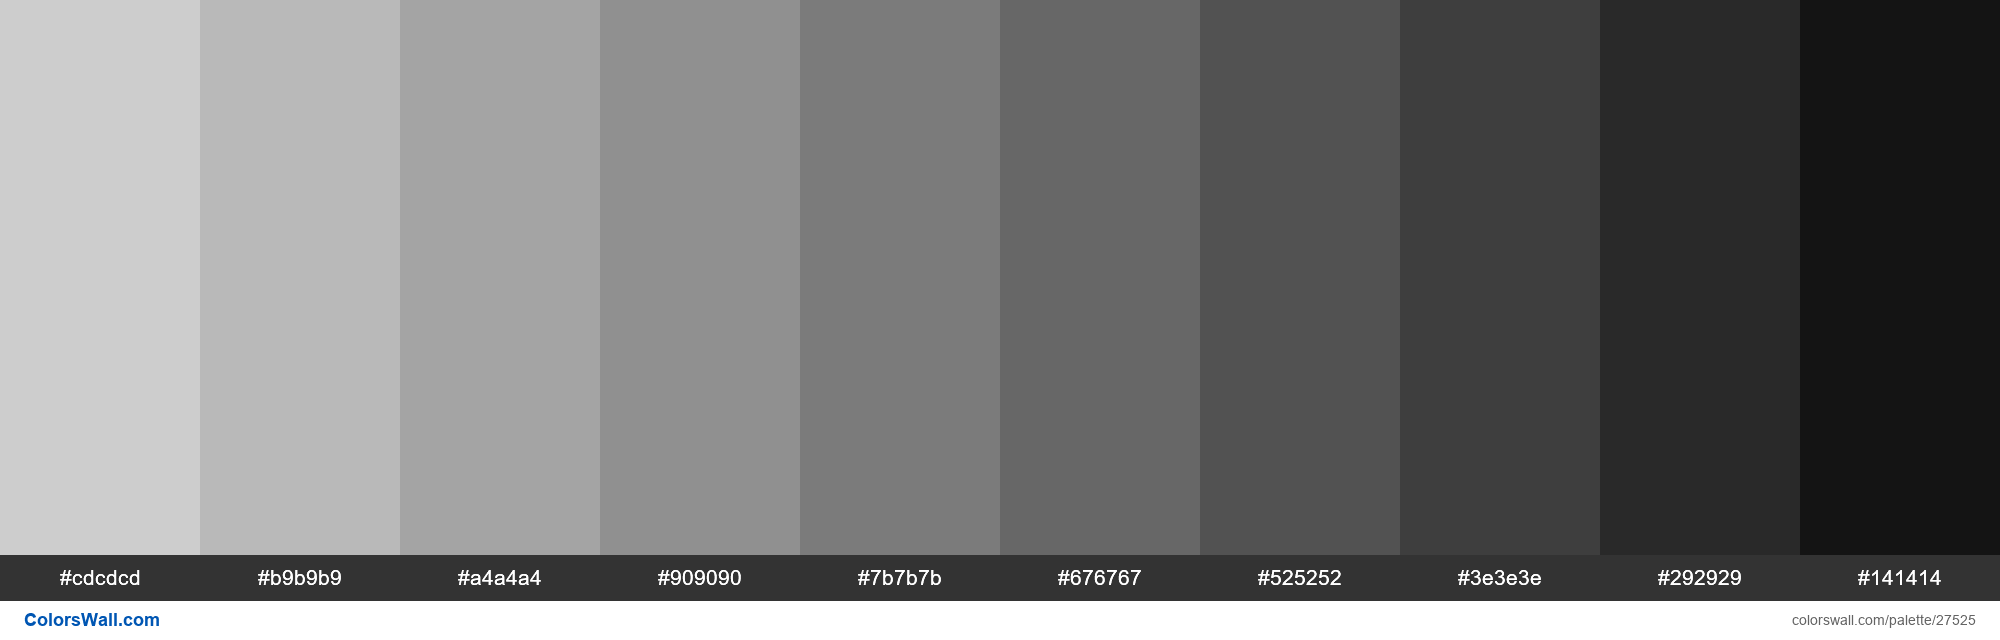 Shades of Very Light Grey color #CDCDCD hex in 2020 | Hex ...